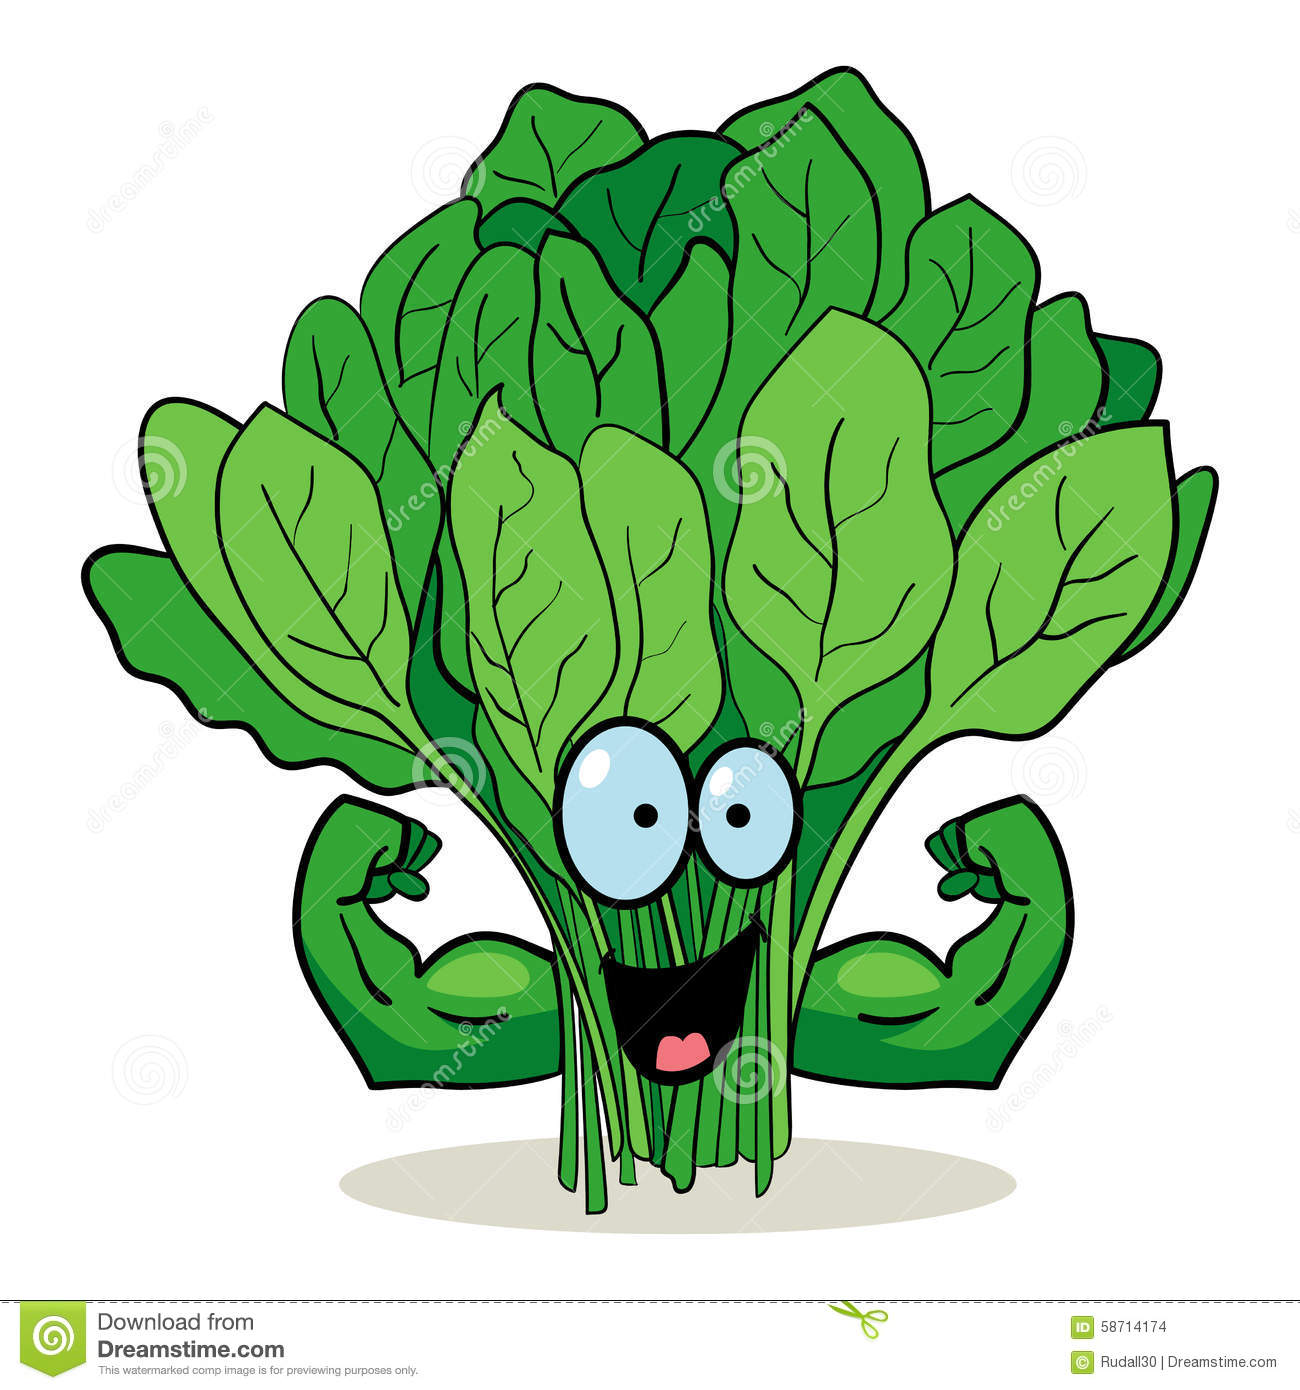 Cartoon character of spinach with muscular hands.